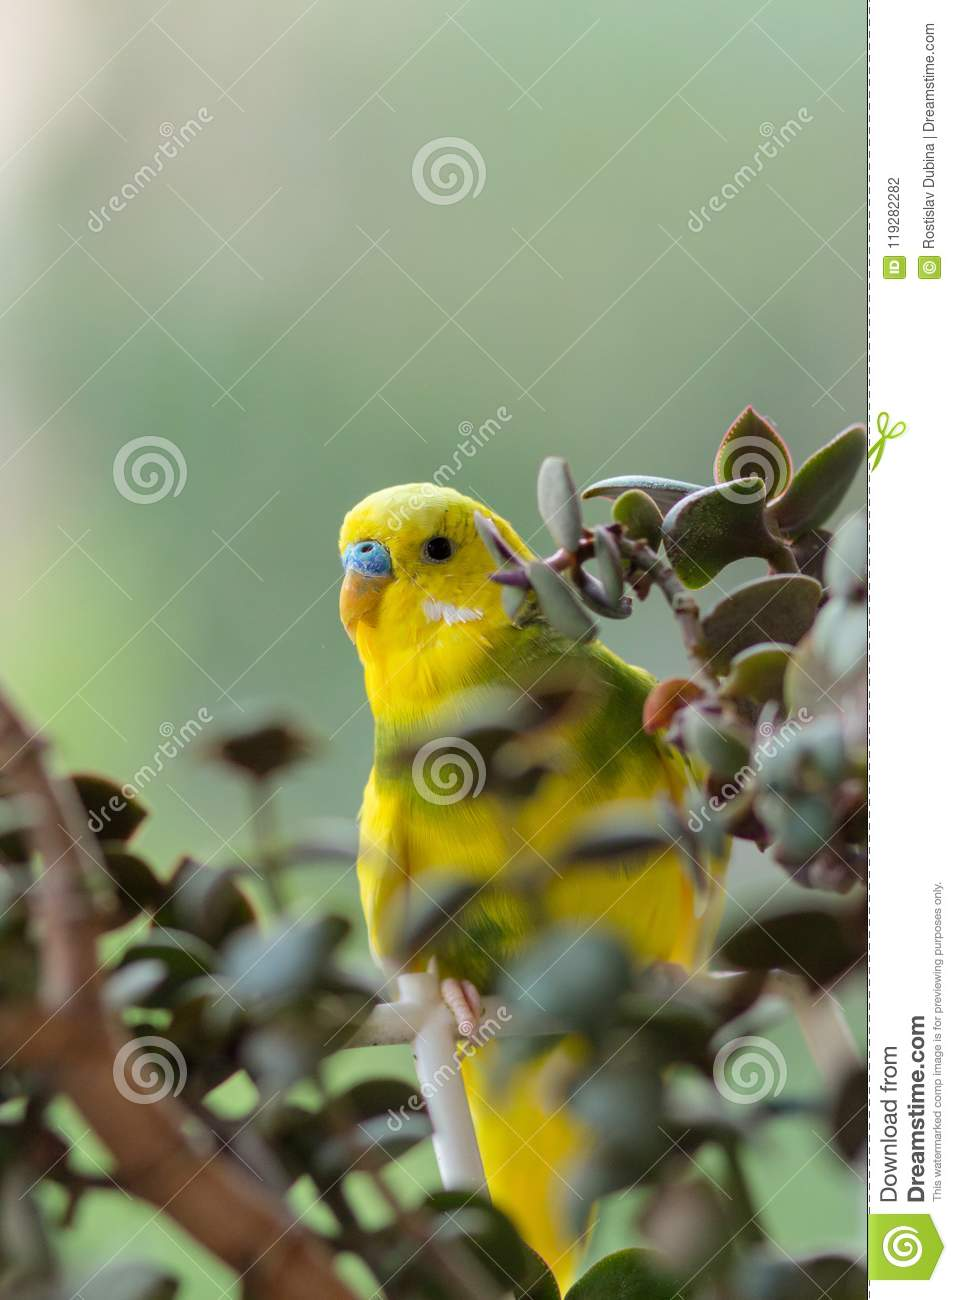 Budgerigar sits on a branch. The parrot is brightly green-colored. Bird parrot is a pet. Beautiful, pet wavy parrot